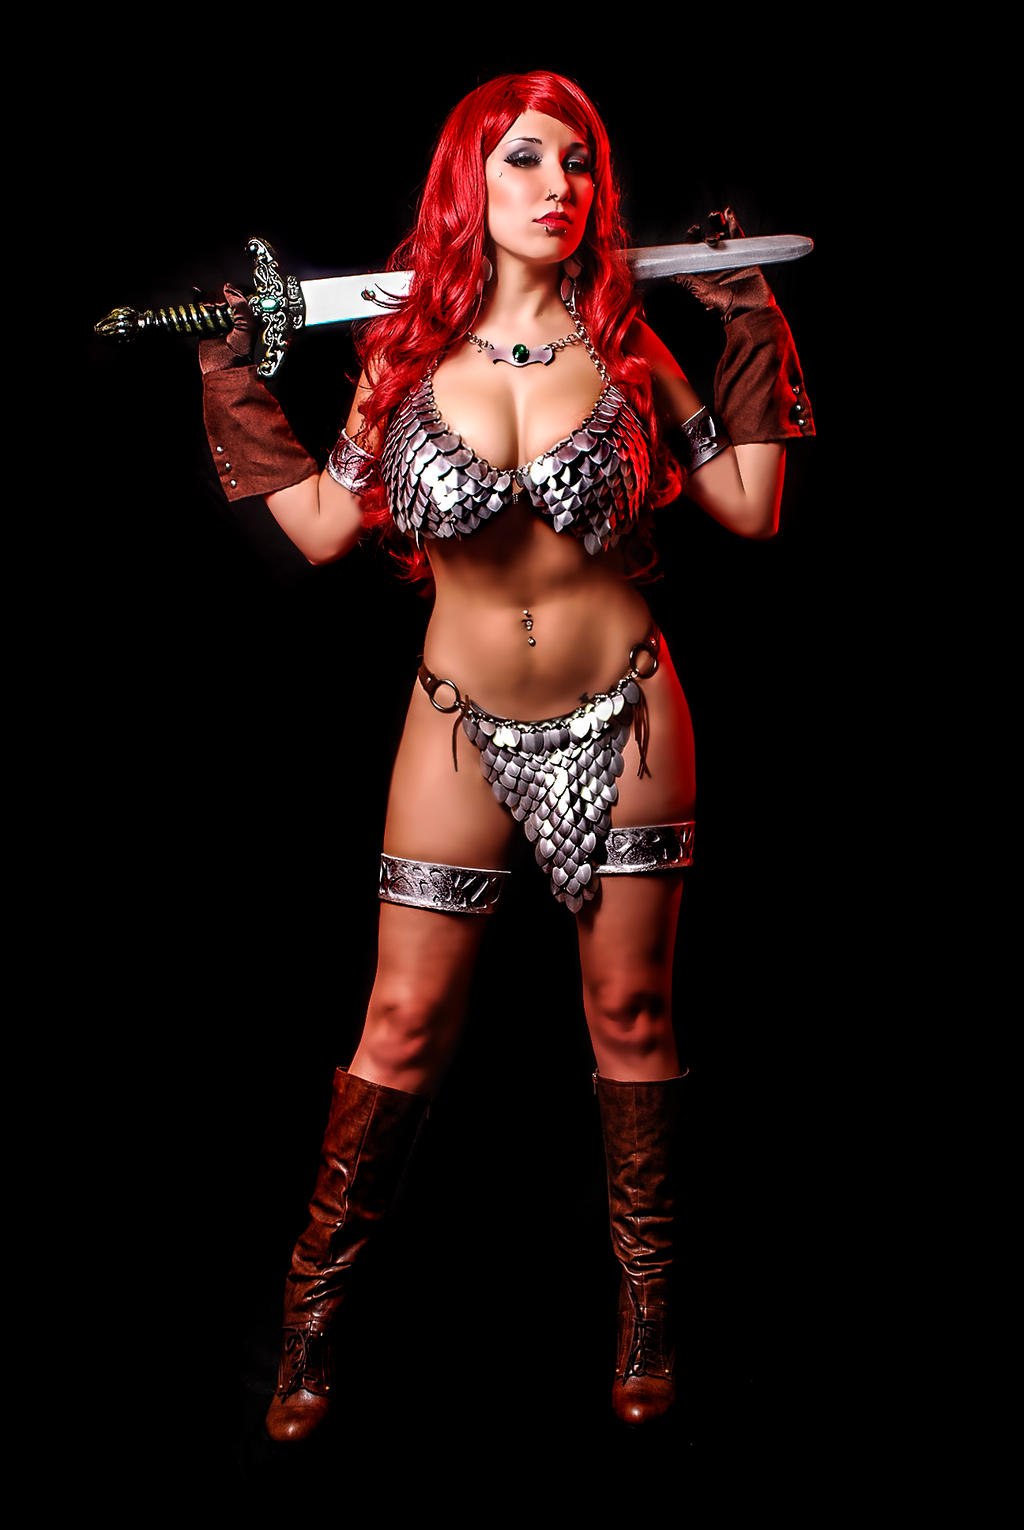 Red Sonja 3 by malcolmflowers